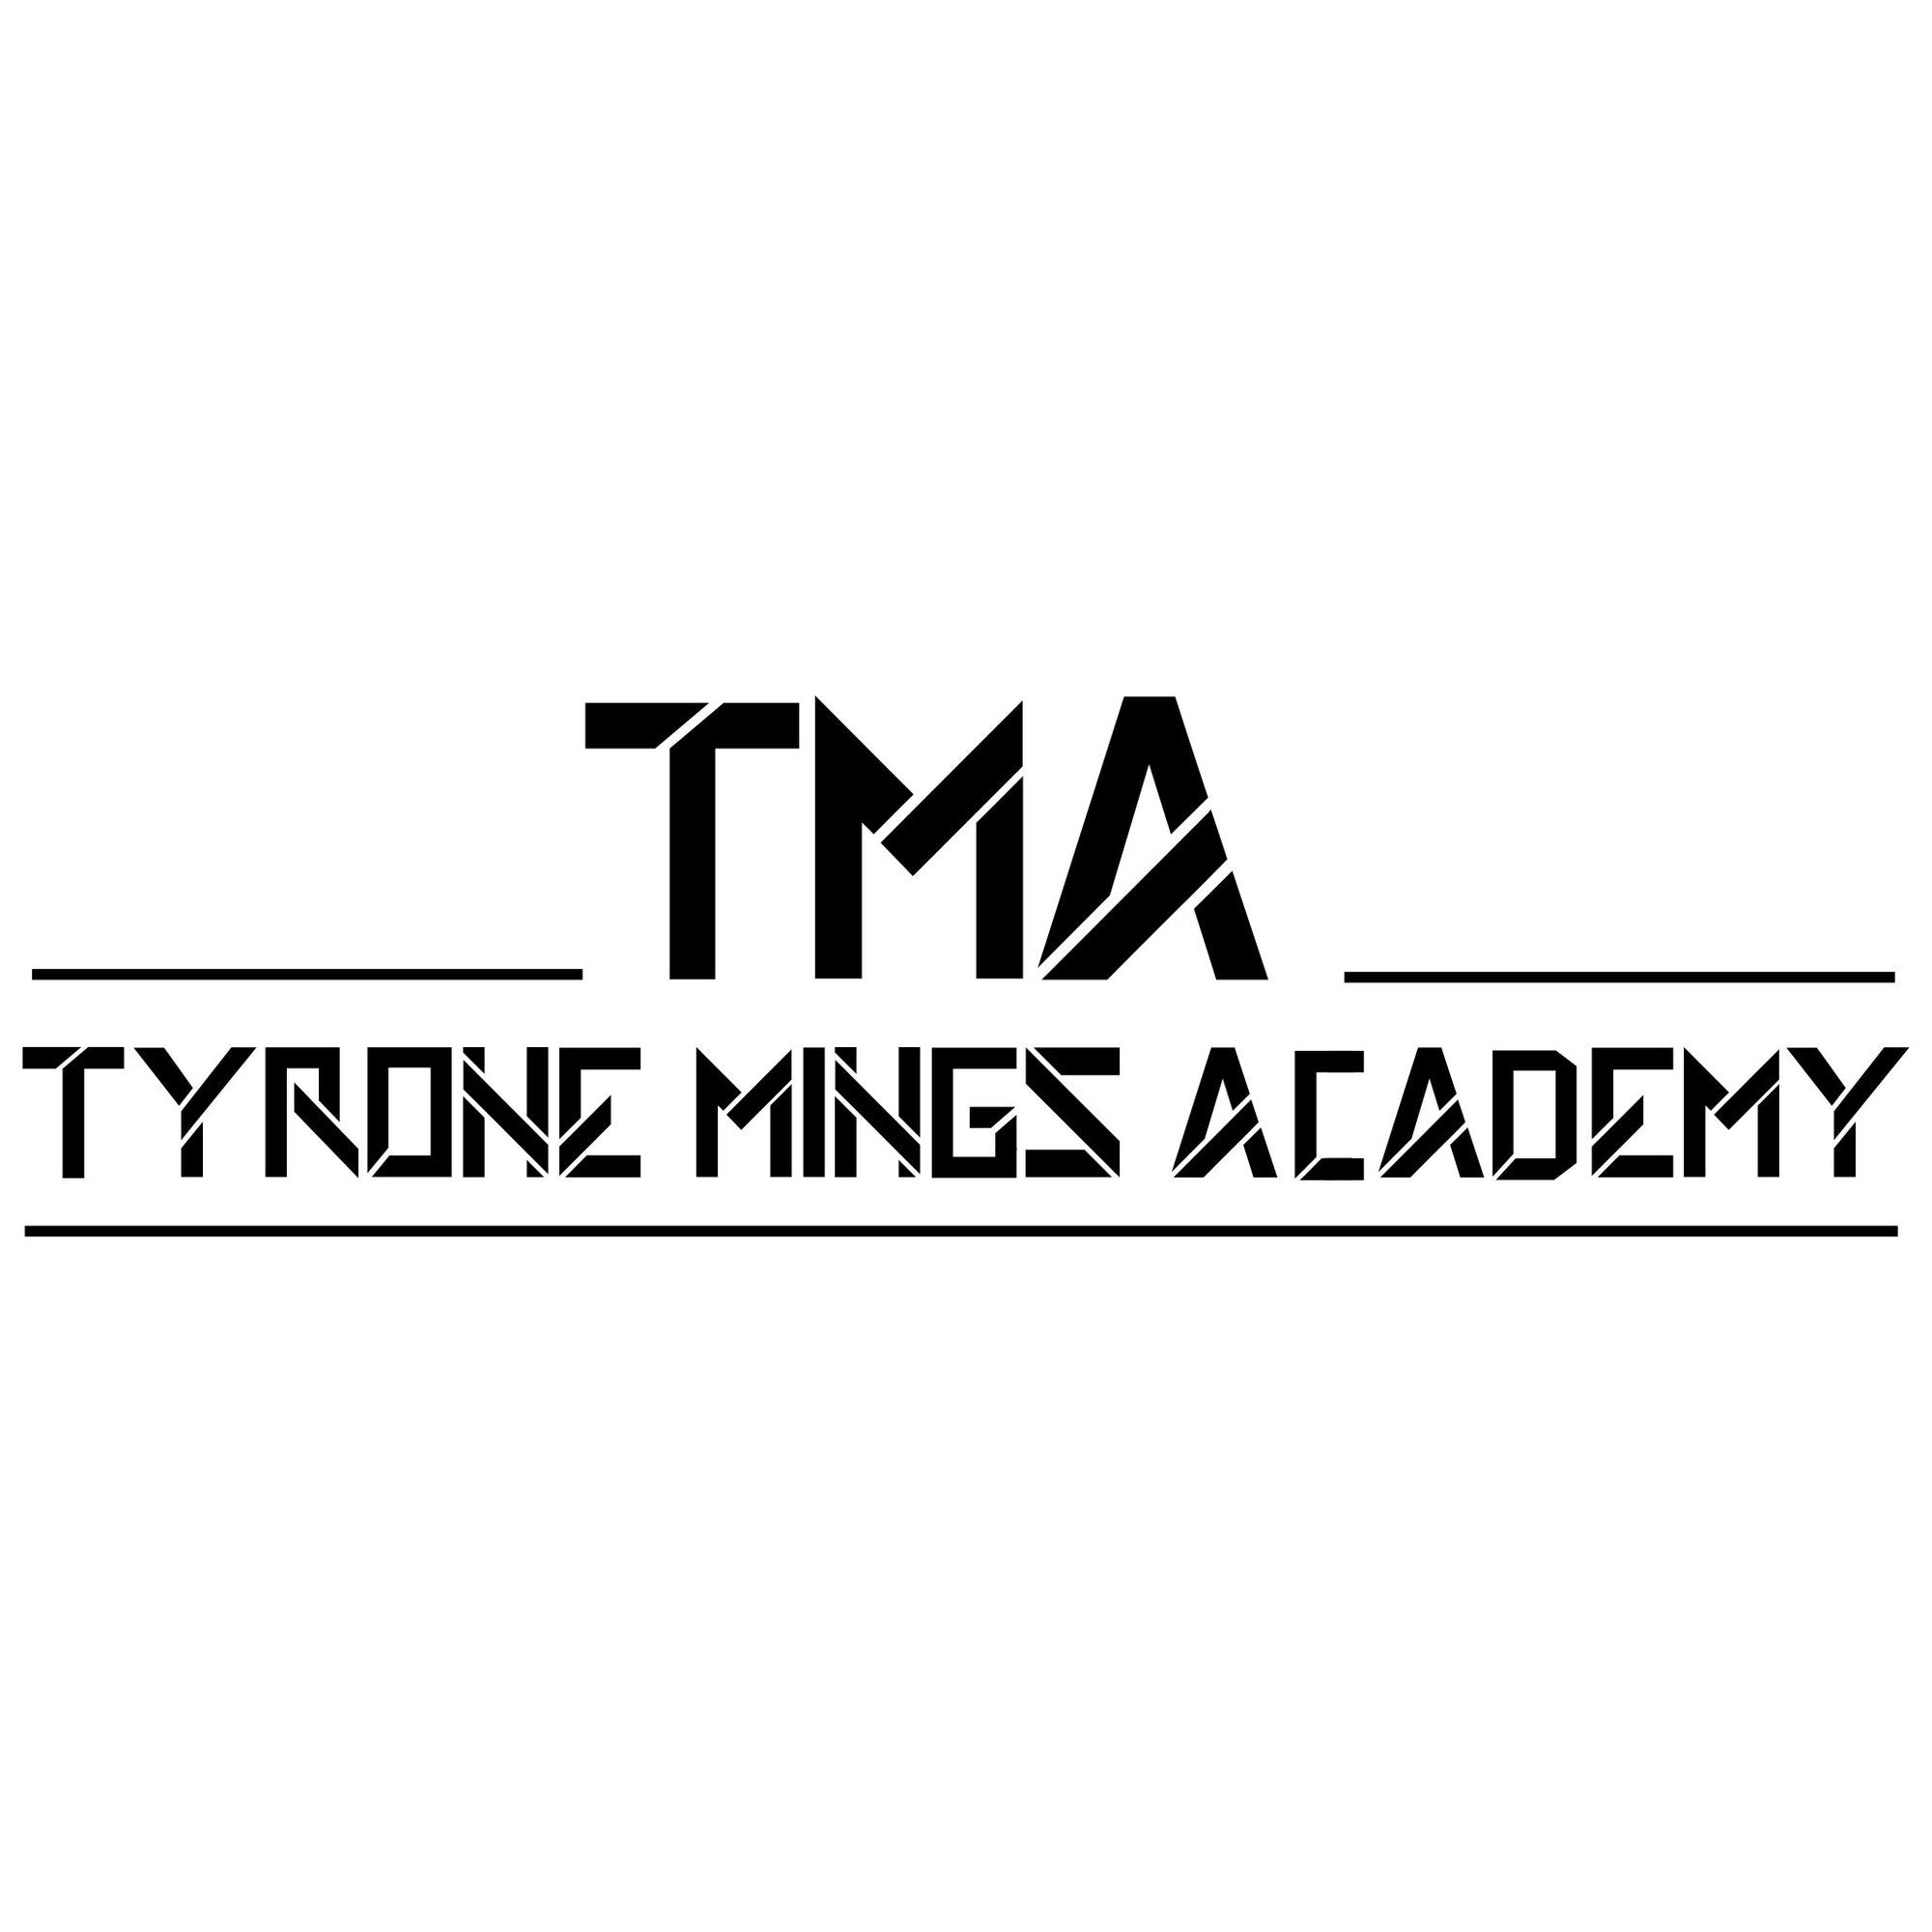 The Tyrone Mings Academy